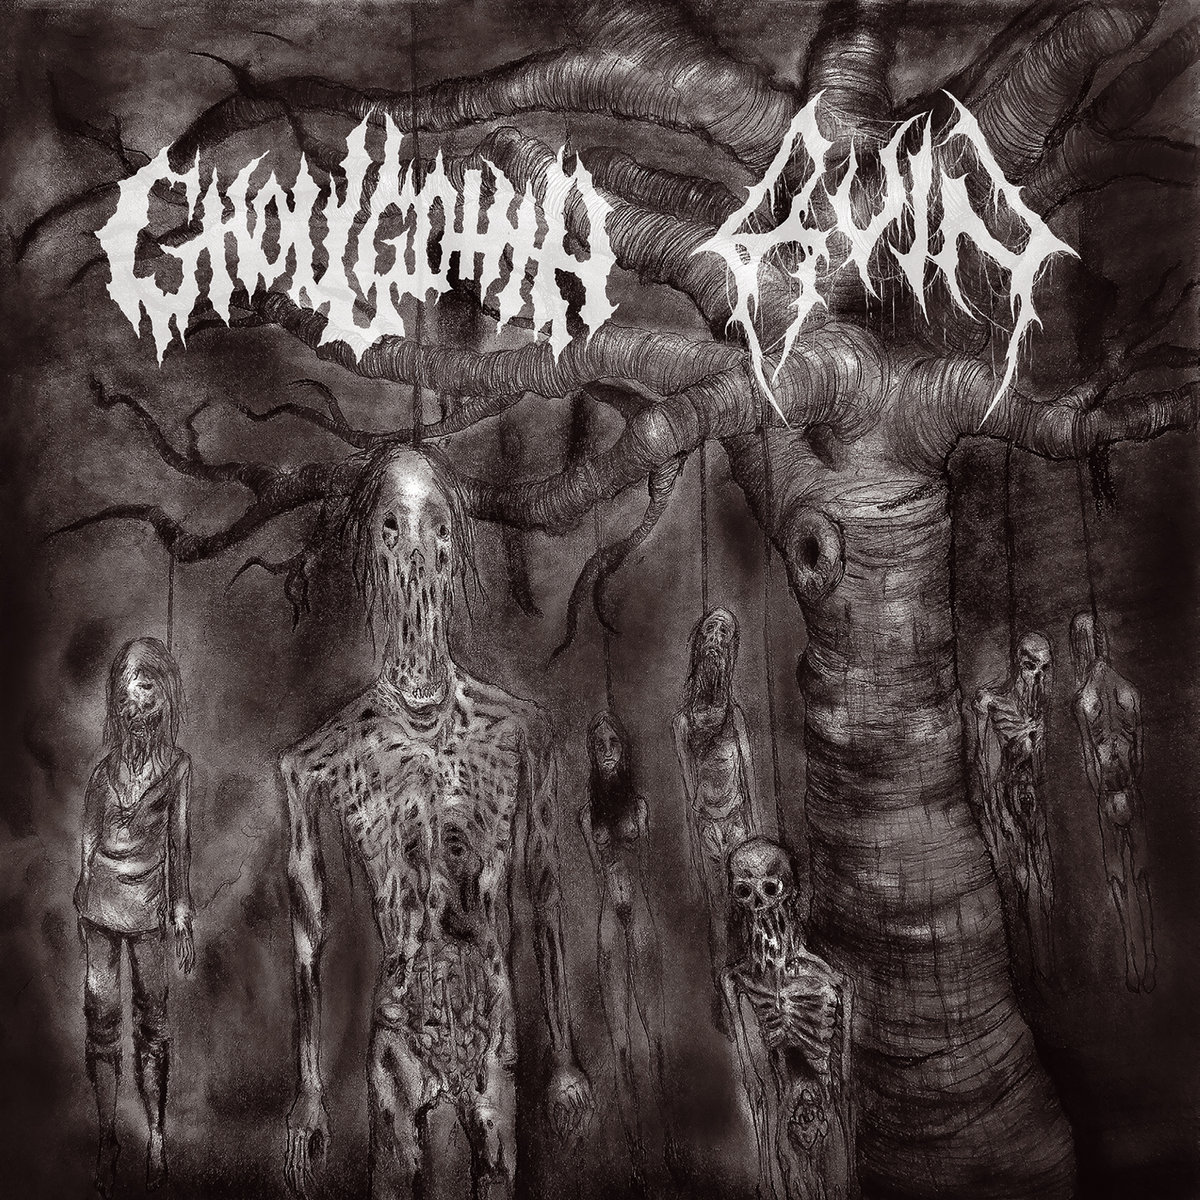 GHOULGOTHA / RUIN - Churning in Vertebraes / Becoming Disease